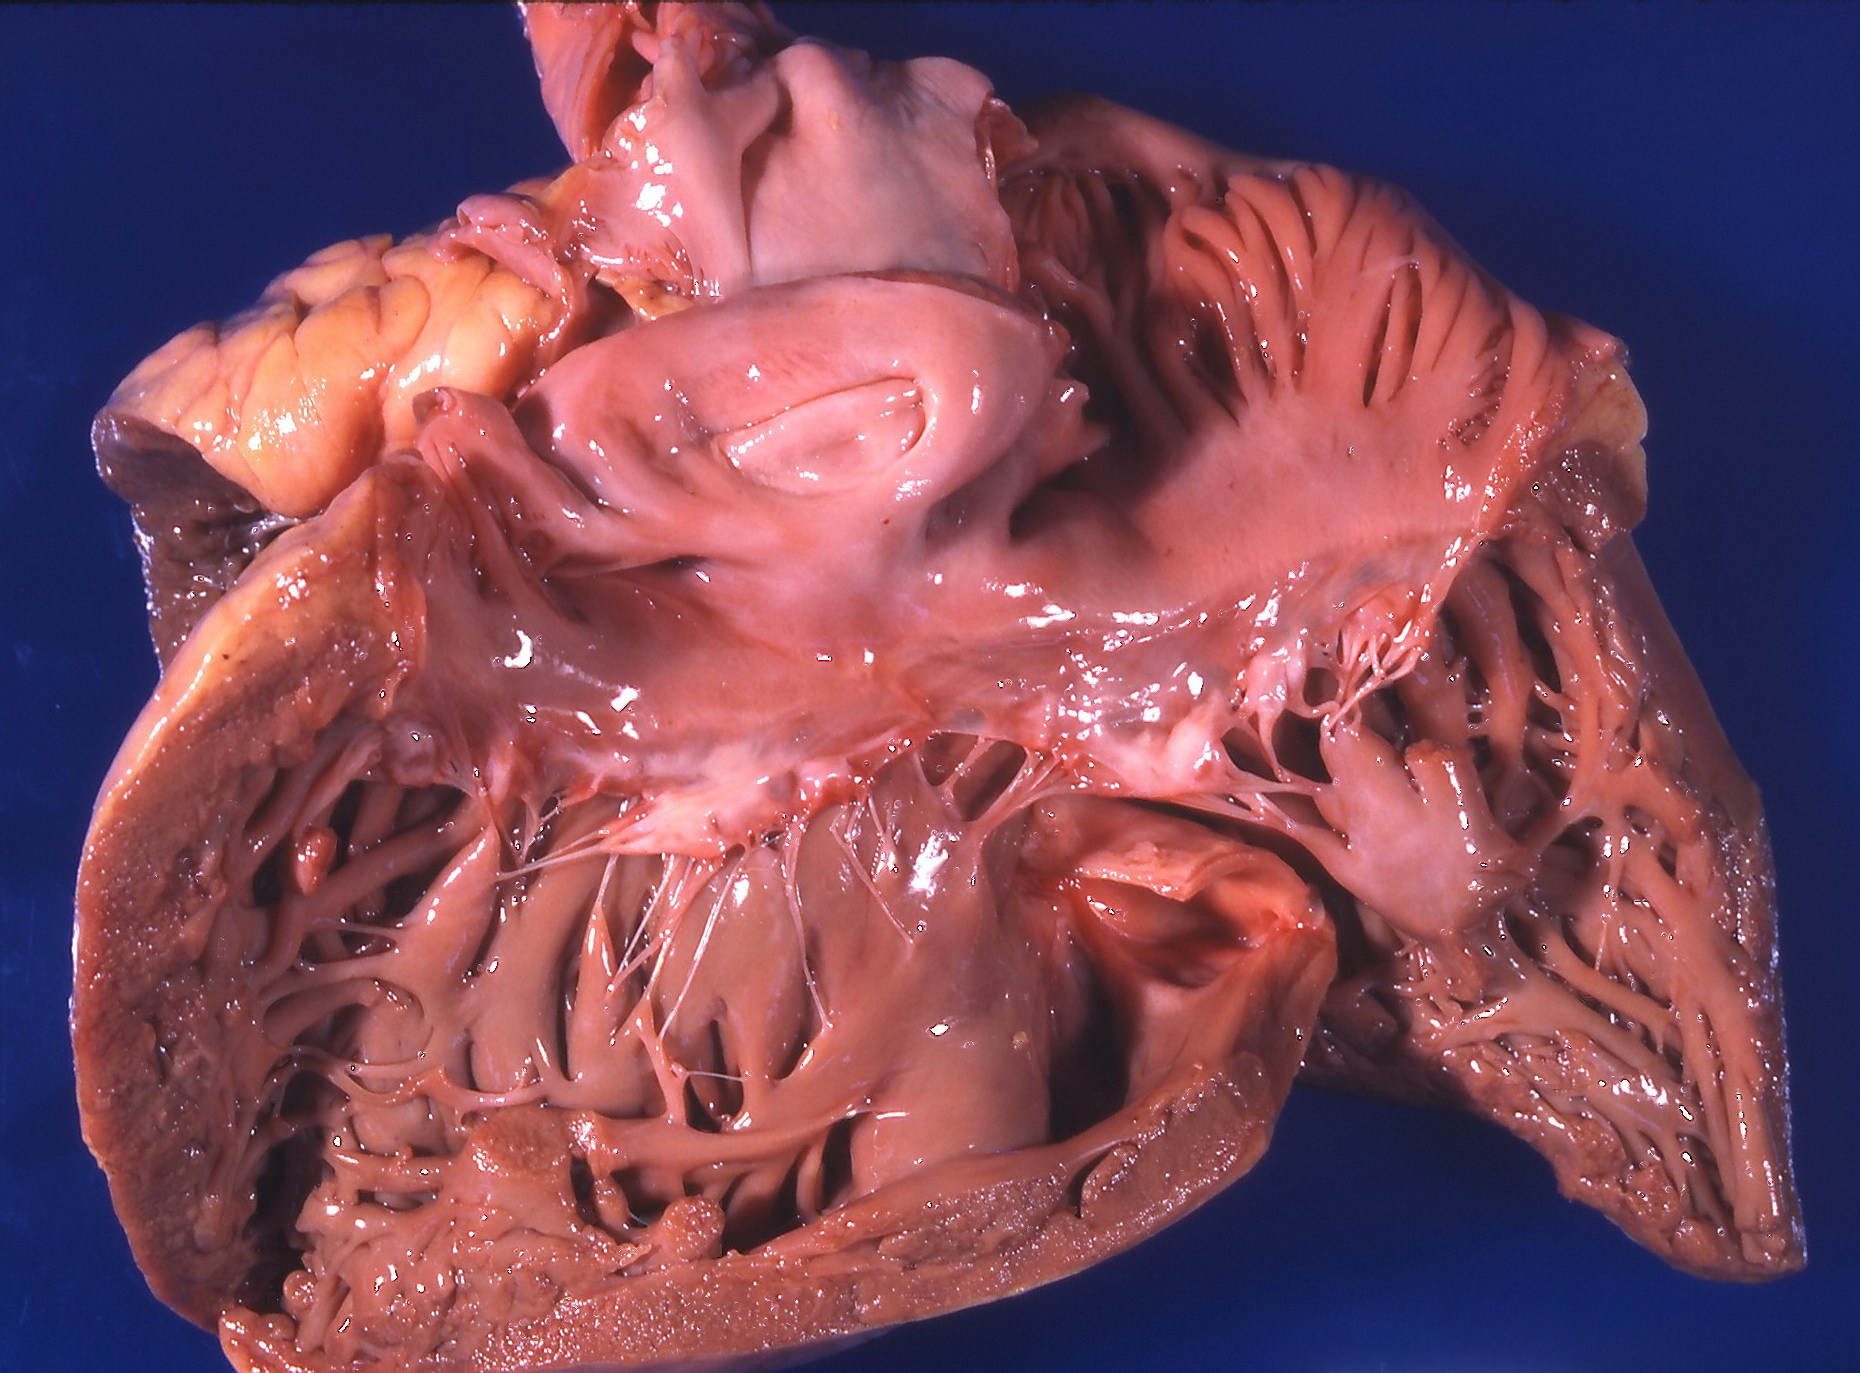 horse heart compared to human heart